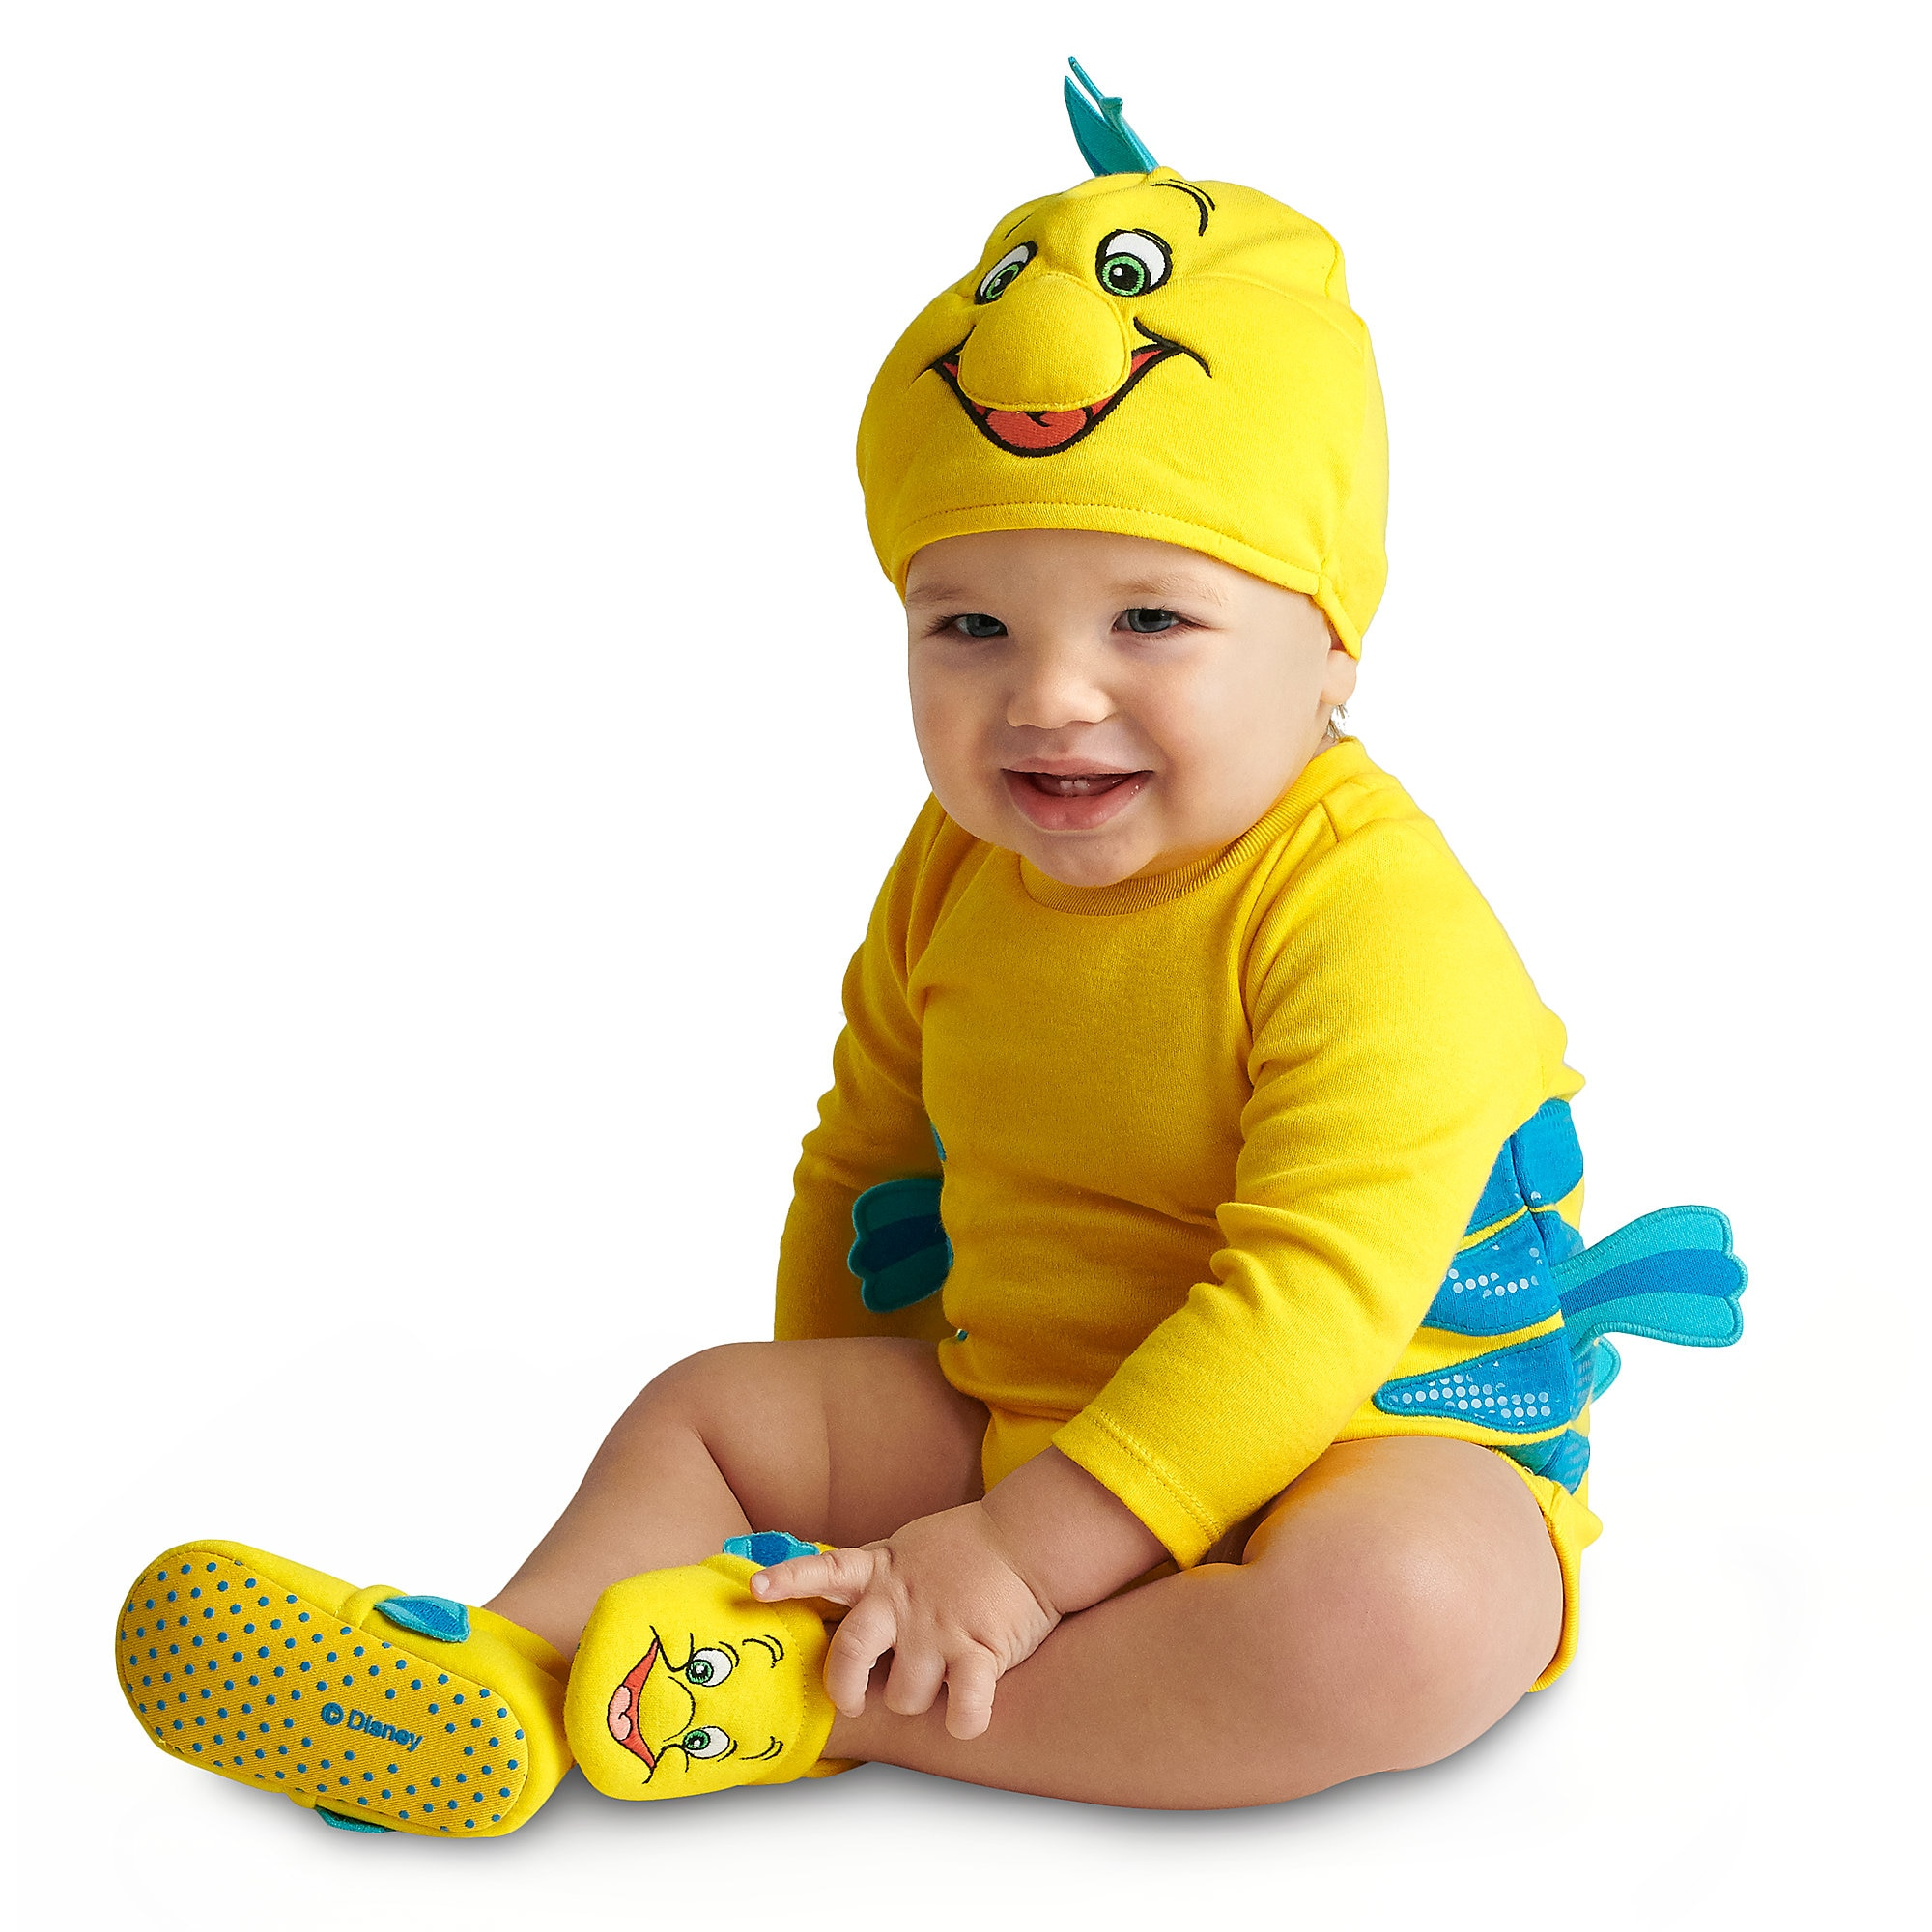 Flounder Costume Bodysuit Collection for Baby - The Little Mermaid